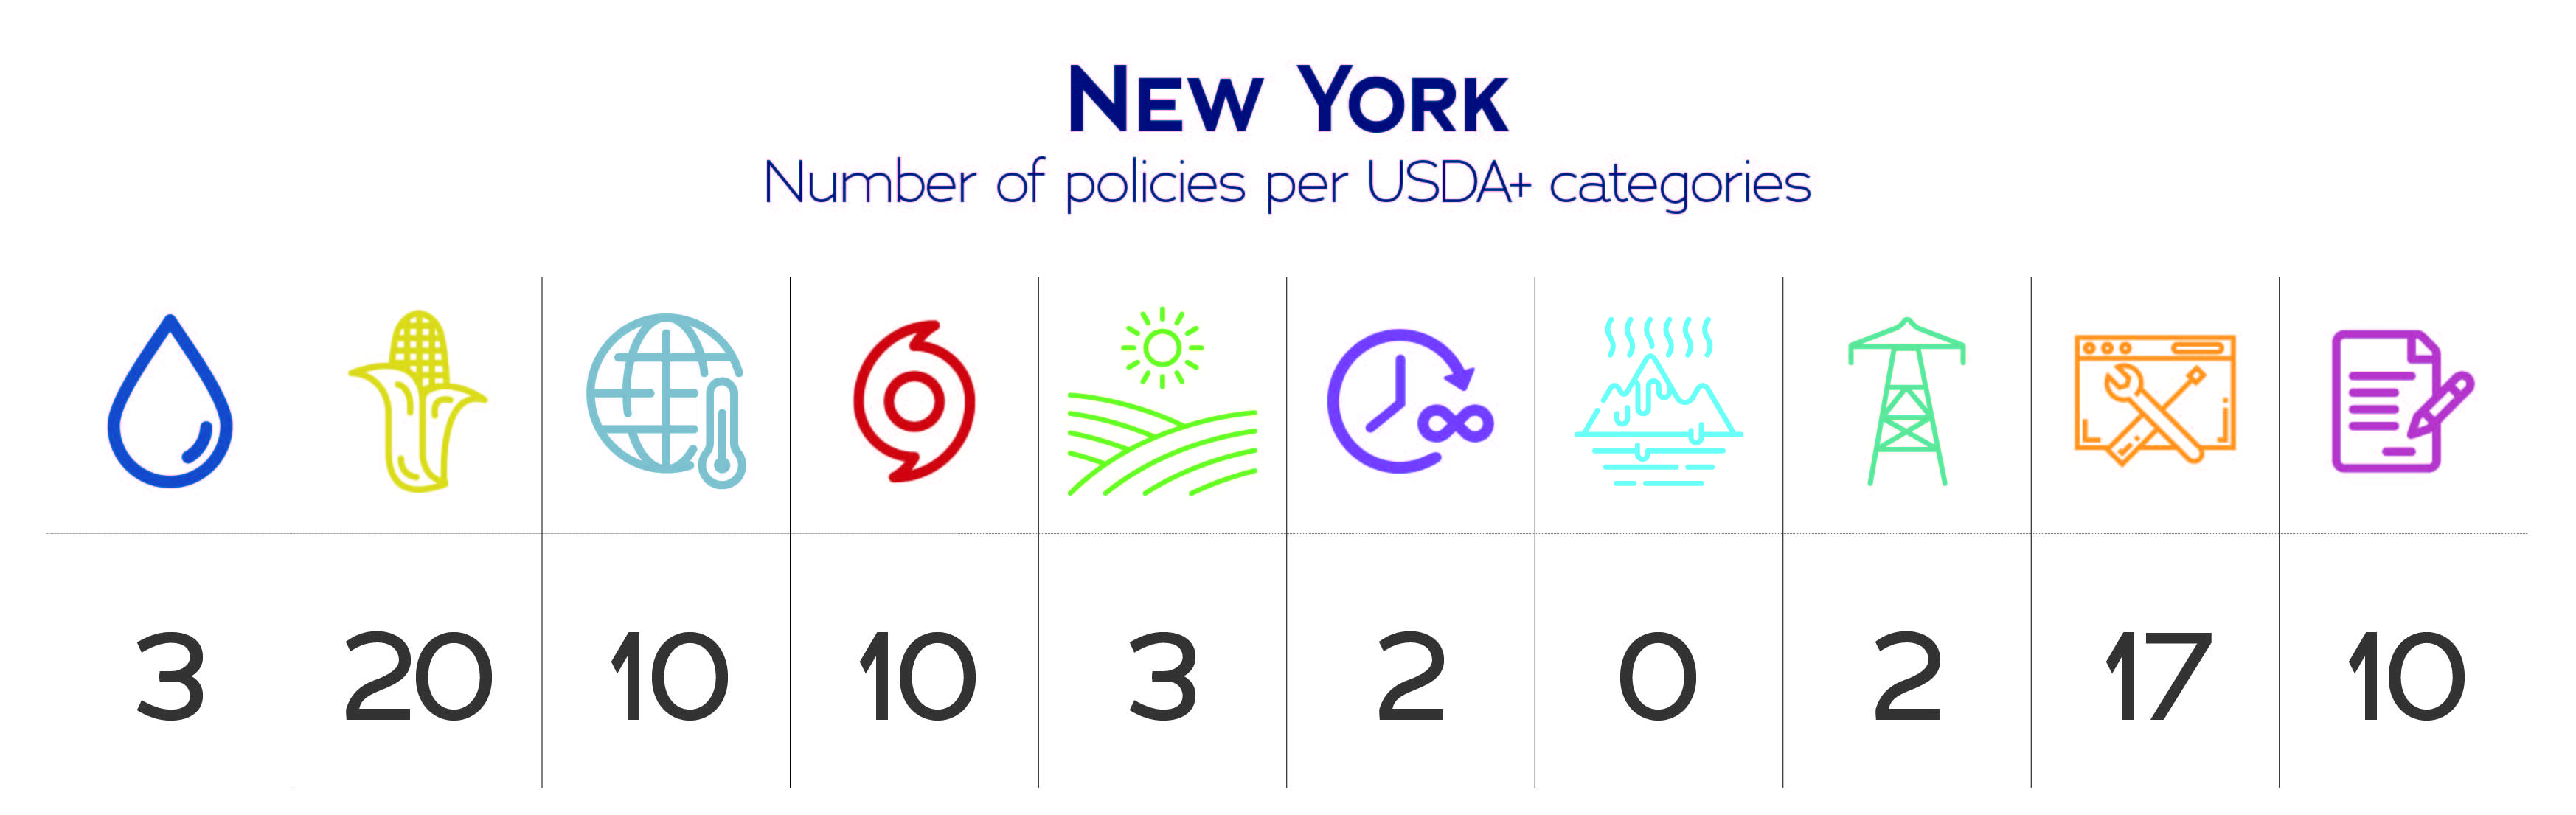 New York USDA+ category data